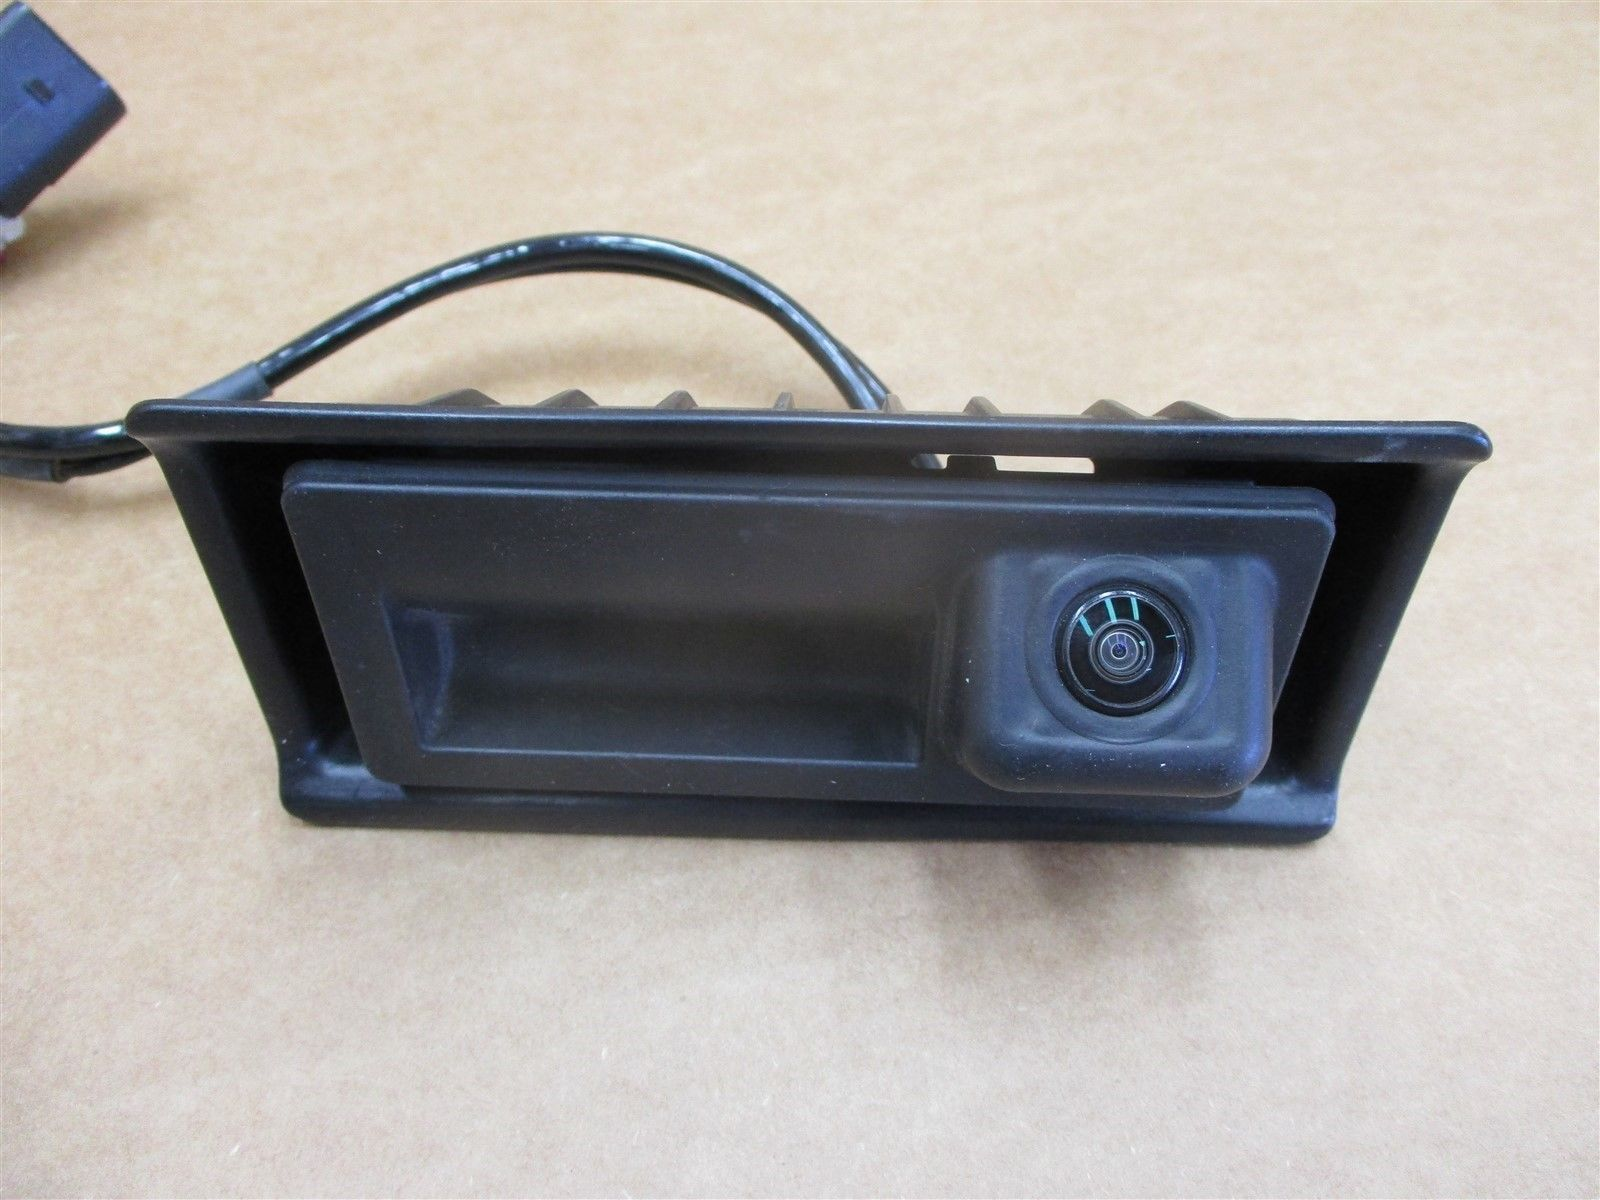 16 Cayenne AWD Porsche 958 REAR BACK UP CAMERA 23,898 N/A